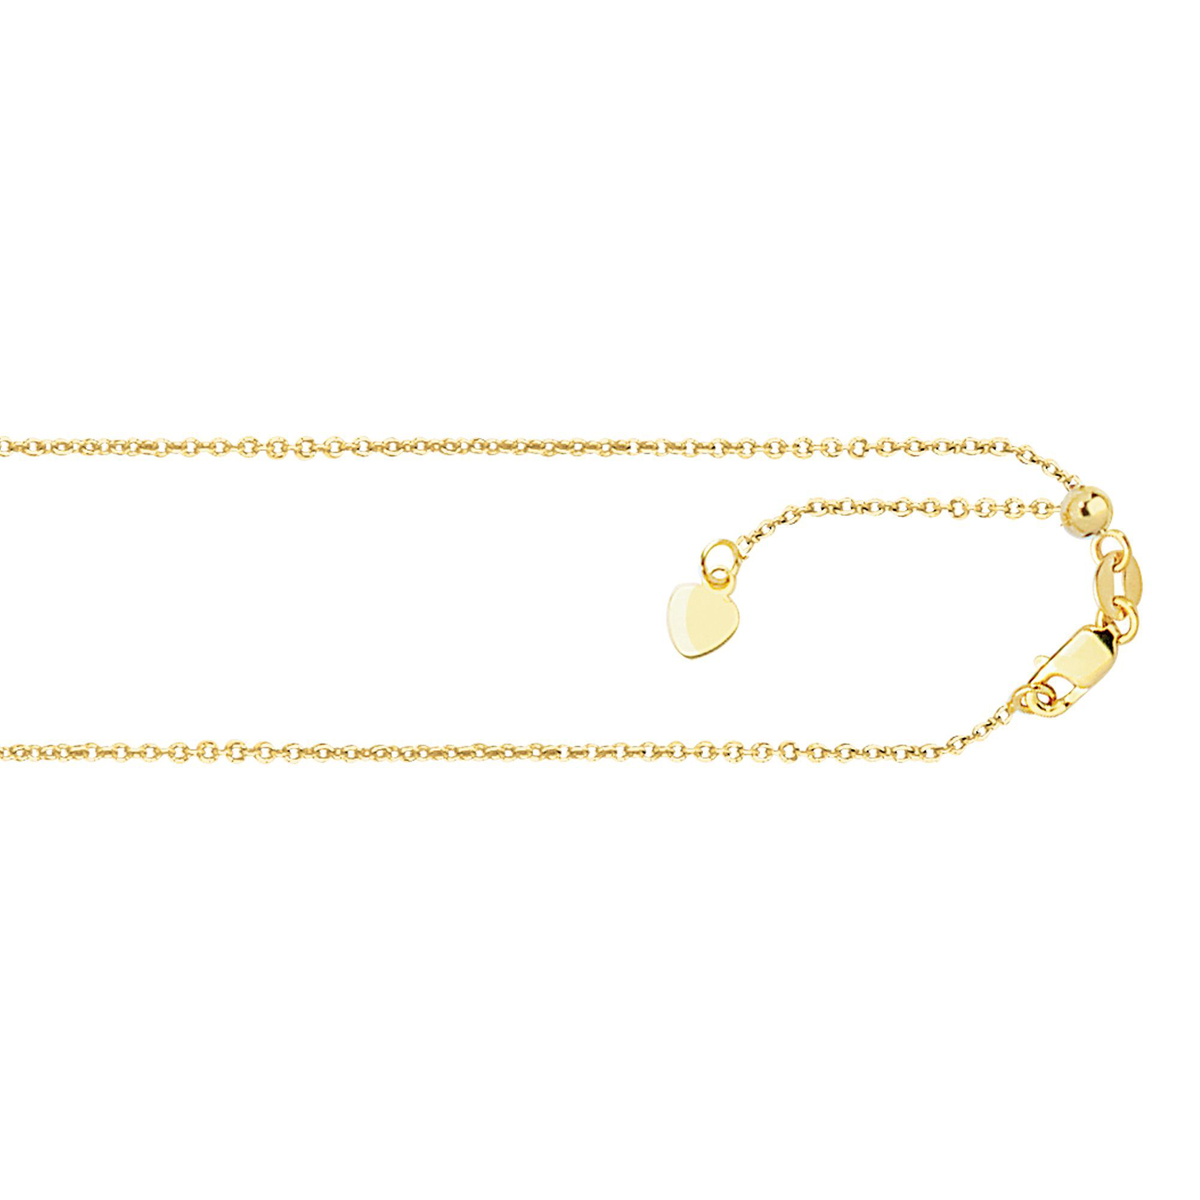 Royal Chain 14 Karat Yellow Gold .9mm Oval Link Chain Necklace